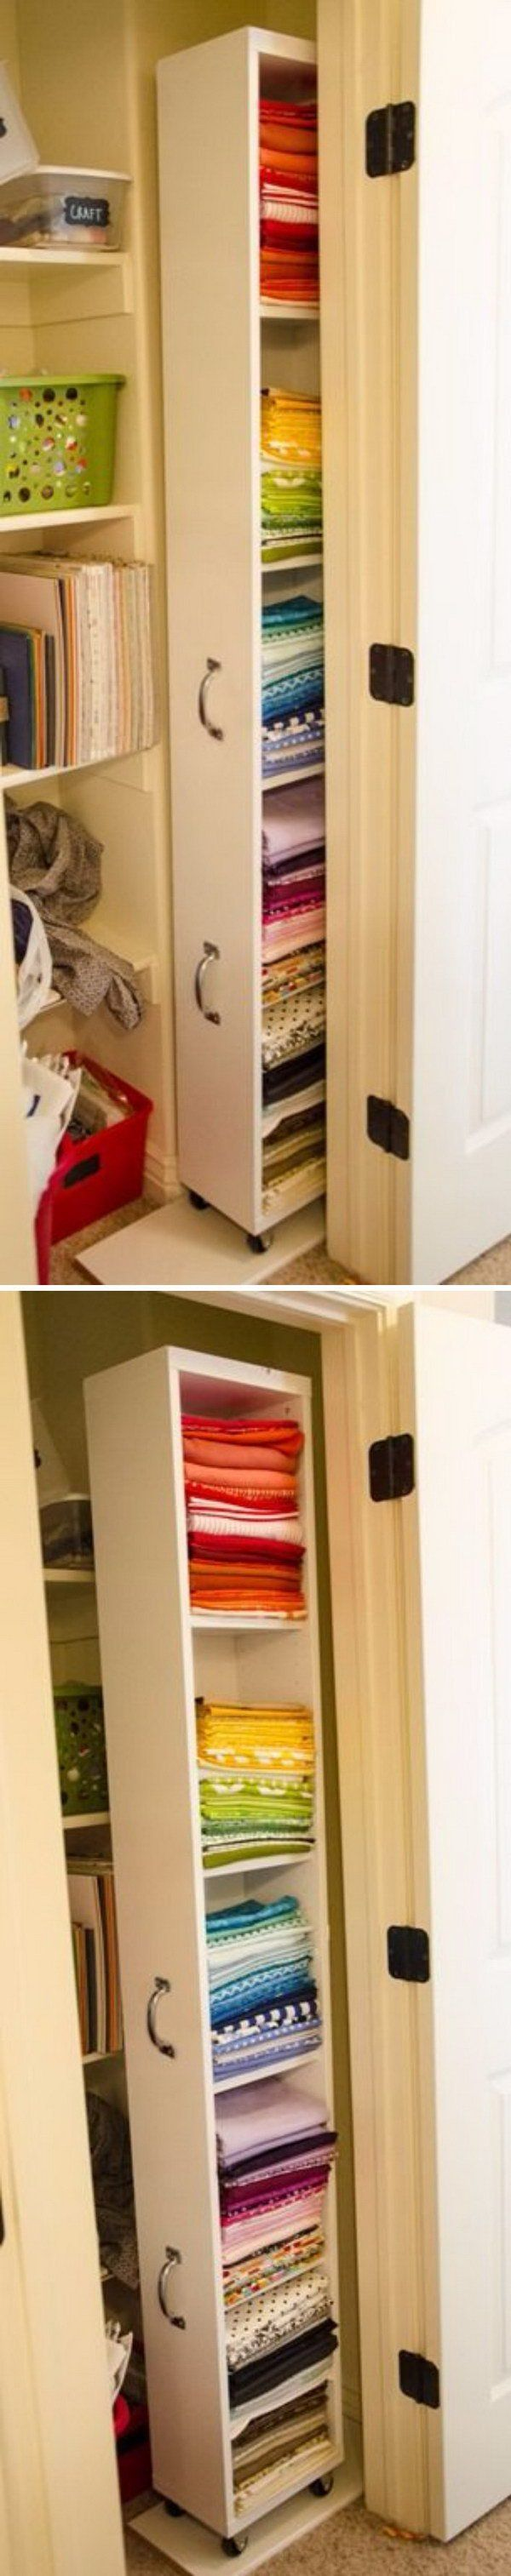 Get 20 ikea billy hack ideas on pinterest without signing up ikea billy ikea bookcase and Crear armario ikea